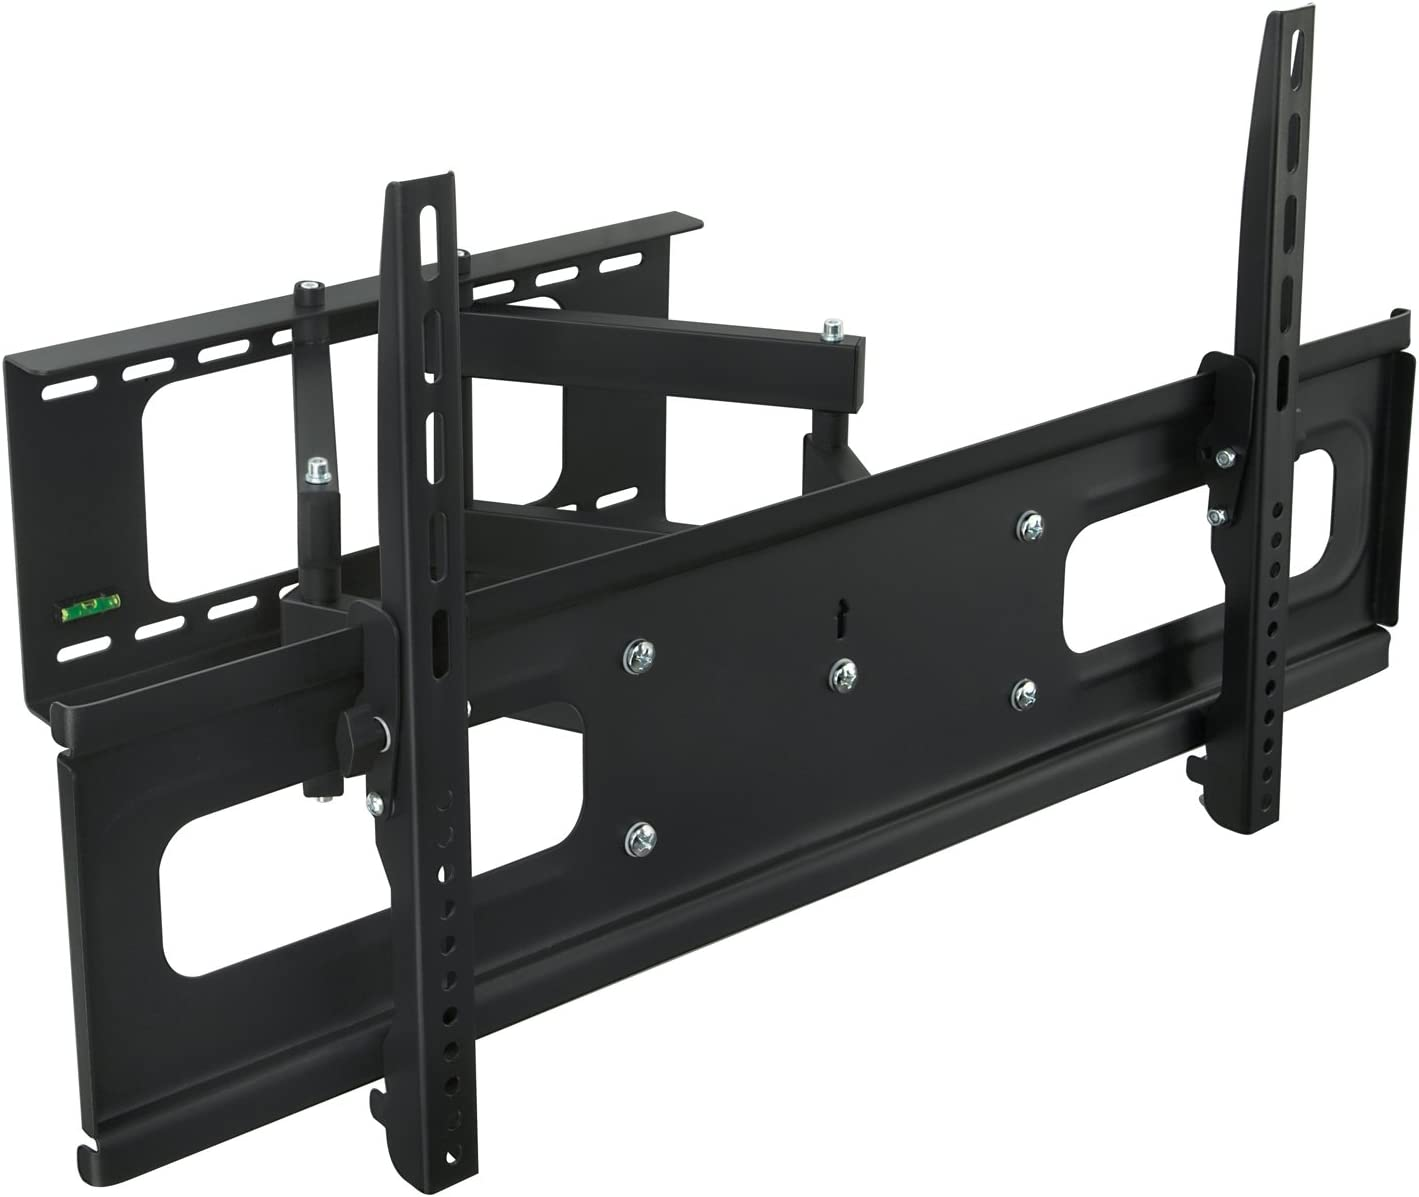 "Mount-It! MI-349B/948 Articulating TV Wall Mount Bracket Dual Arm Swivel Design for LCD/LED/4K TVs Fits Most 37""-70"" TV, VESA 200x200, 400x200, 400x400, 600x400 and More"